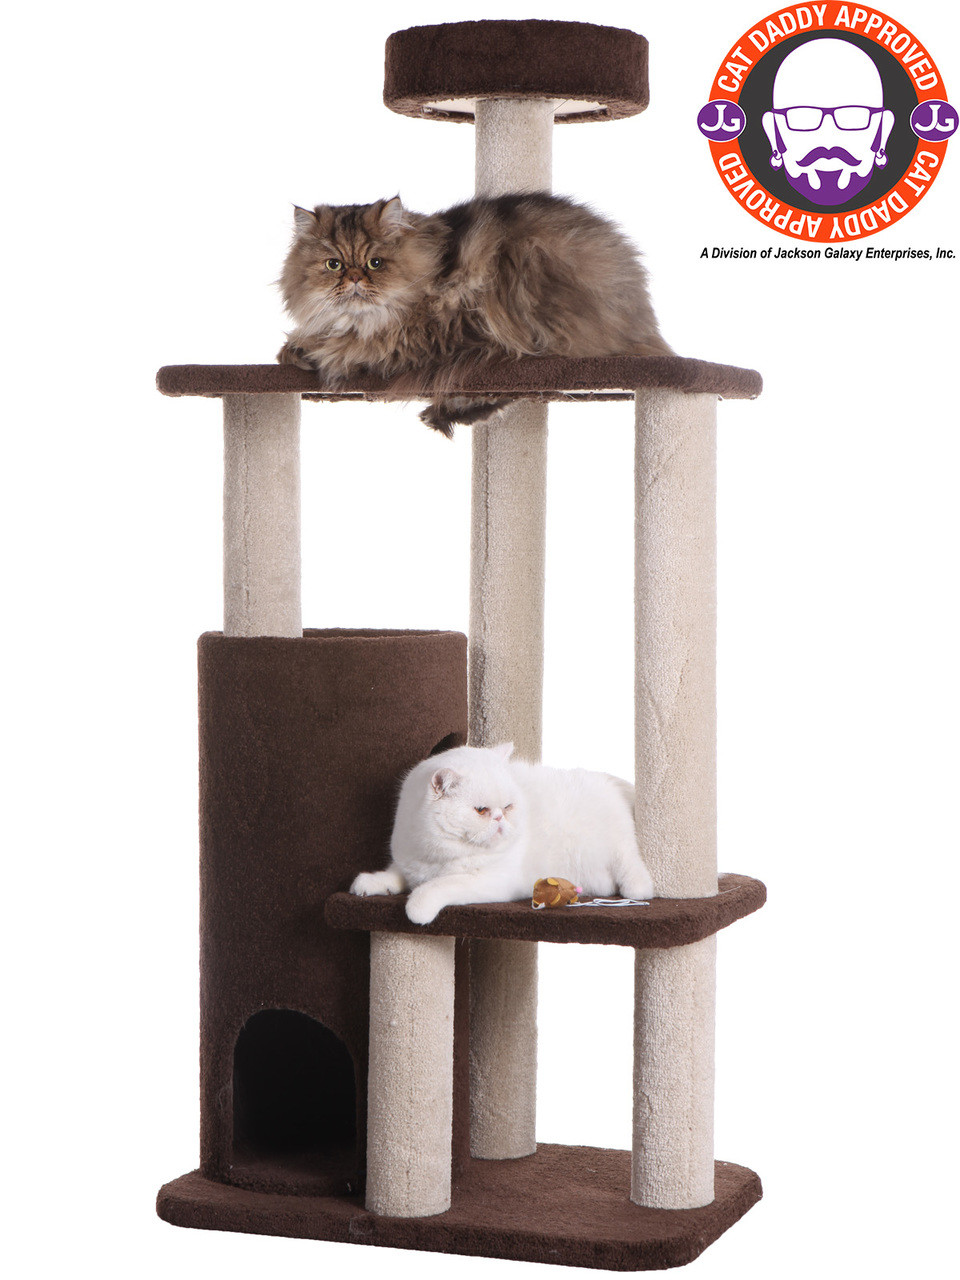 Premium Carpeted Cat Tree F5602